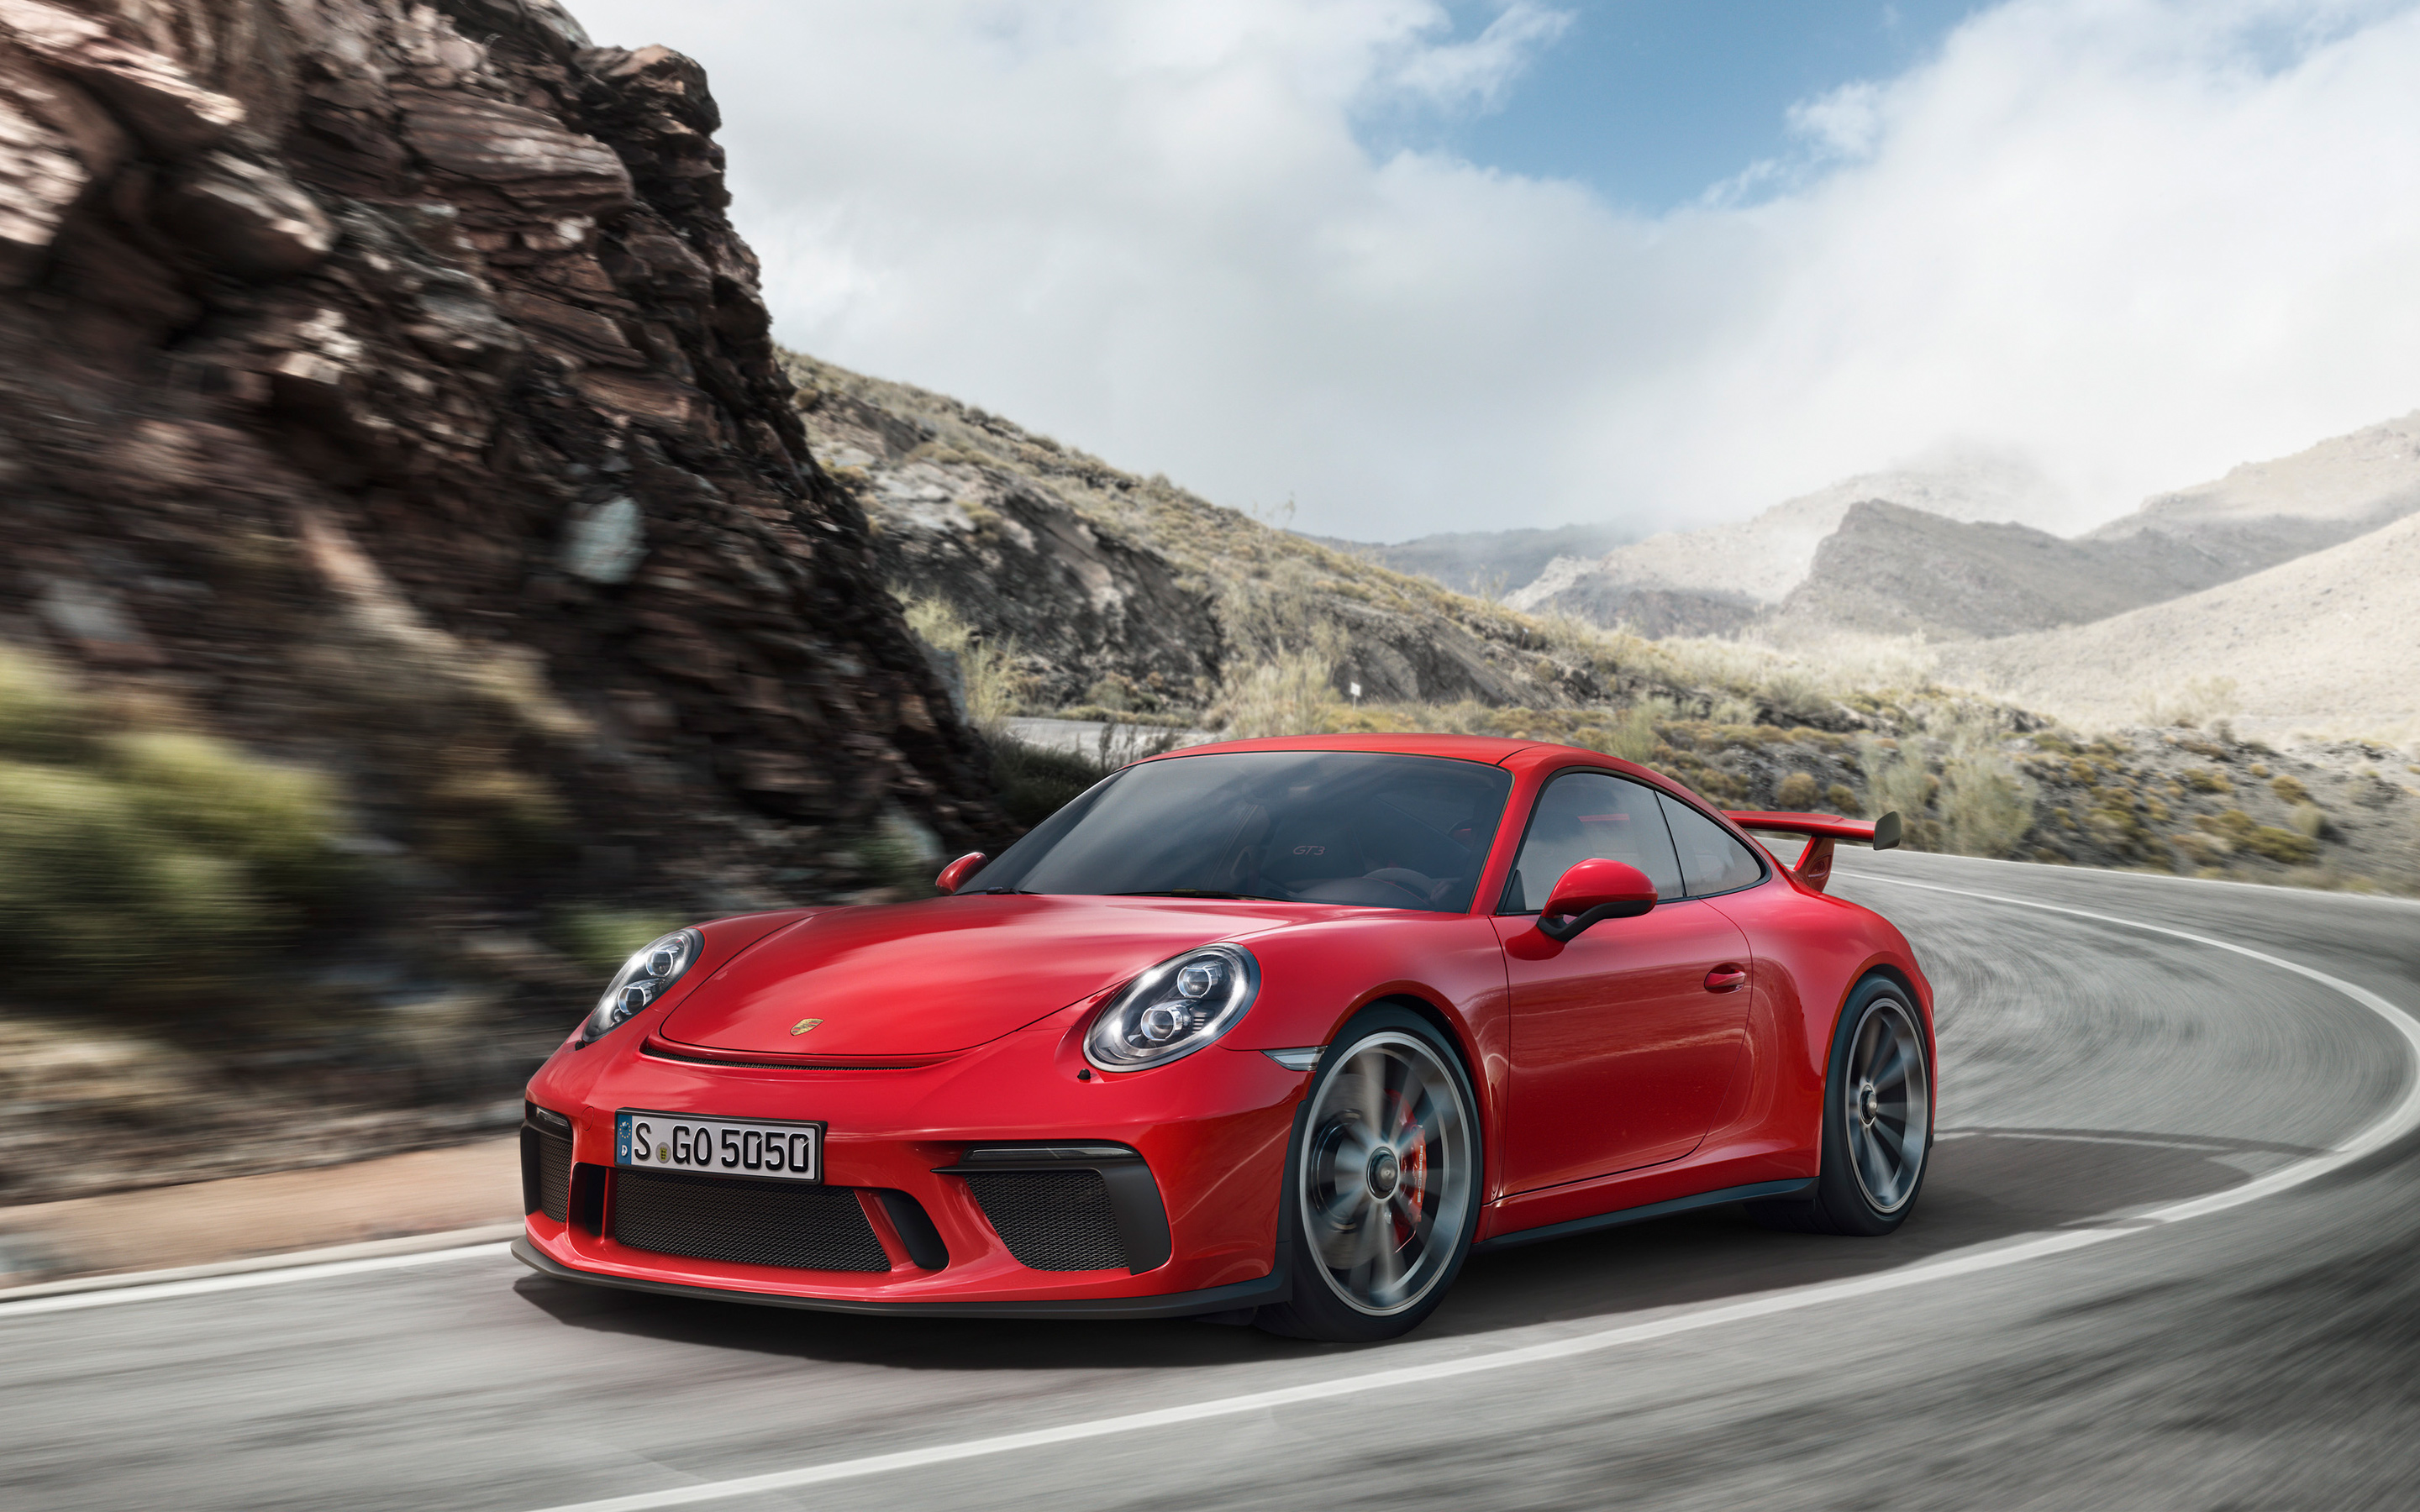 Porsche 911 Wallpapers and Background Images   stmednet 2880x1800